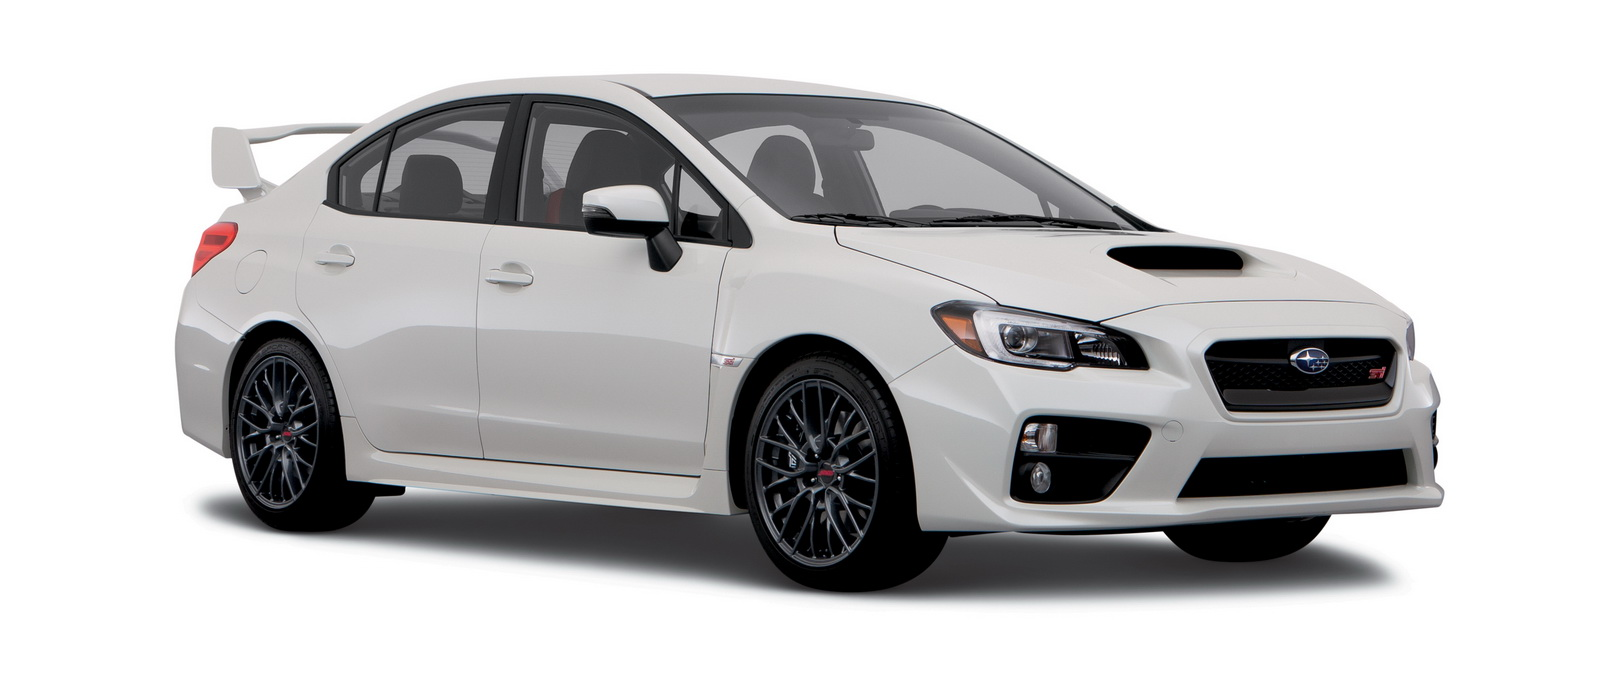 2017 Subaru Wrx Sti Updated With New Safety Features